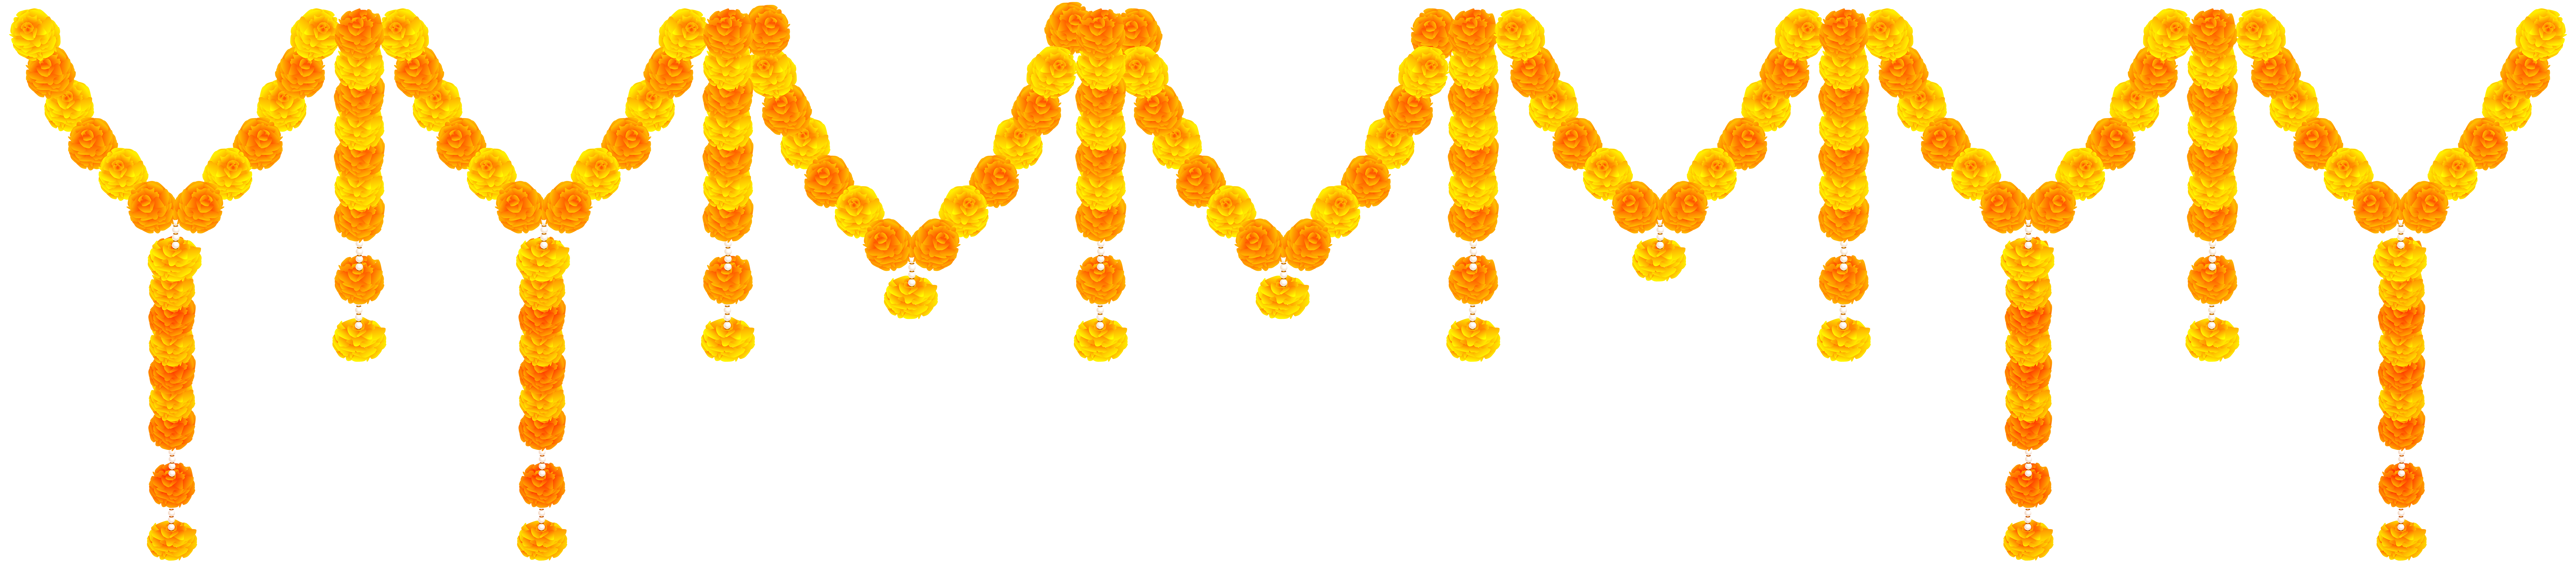 India flower transparent clip. Garland png image vector royalty free download